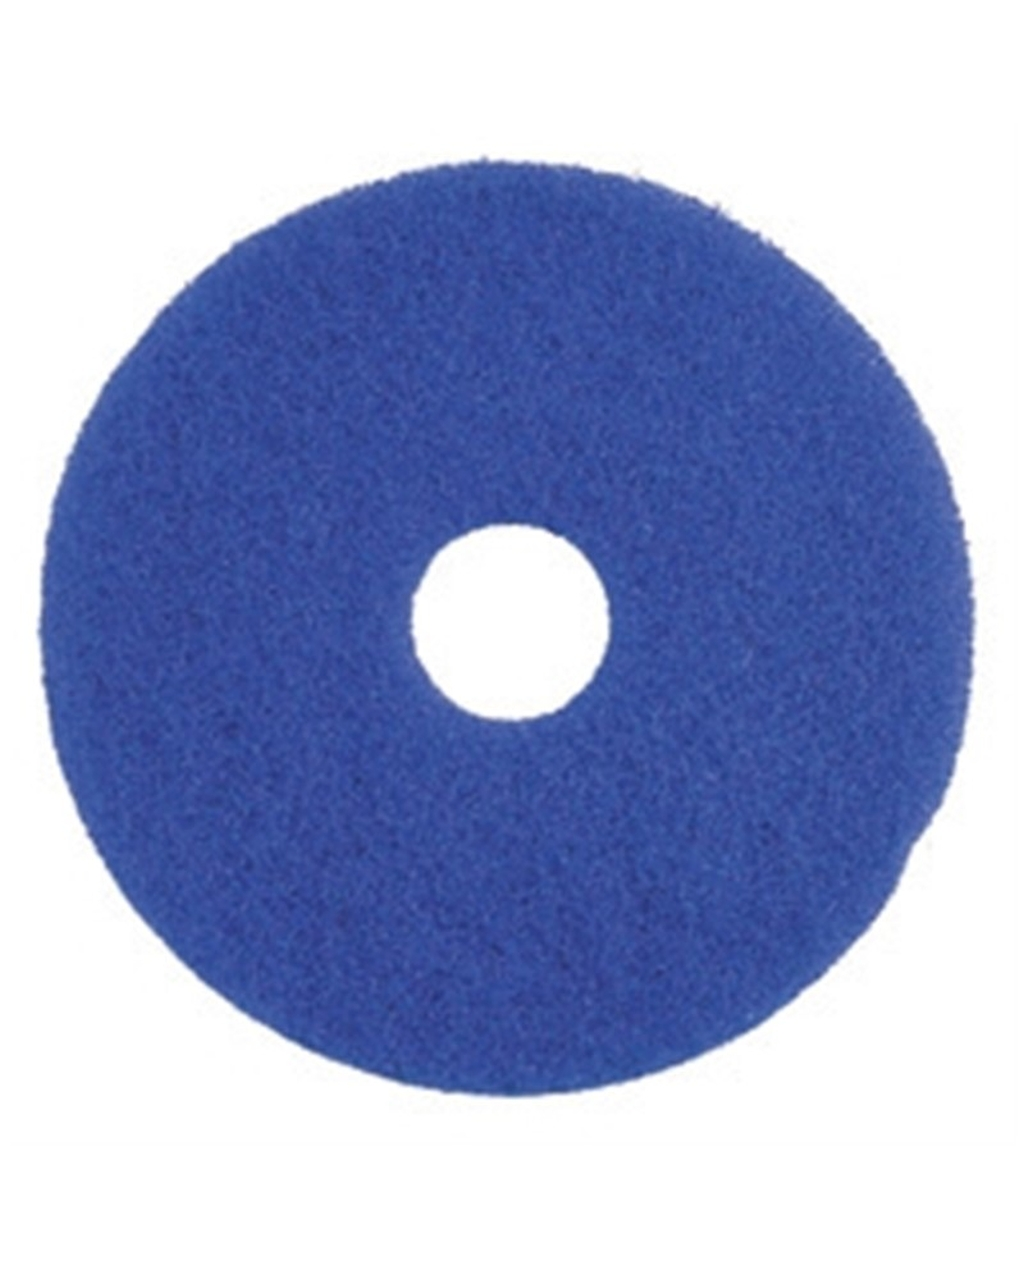 17 Blue Cleaning Pads (Pack of 5)